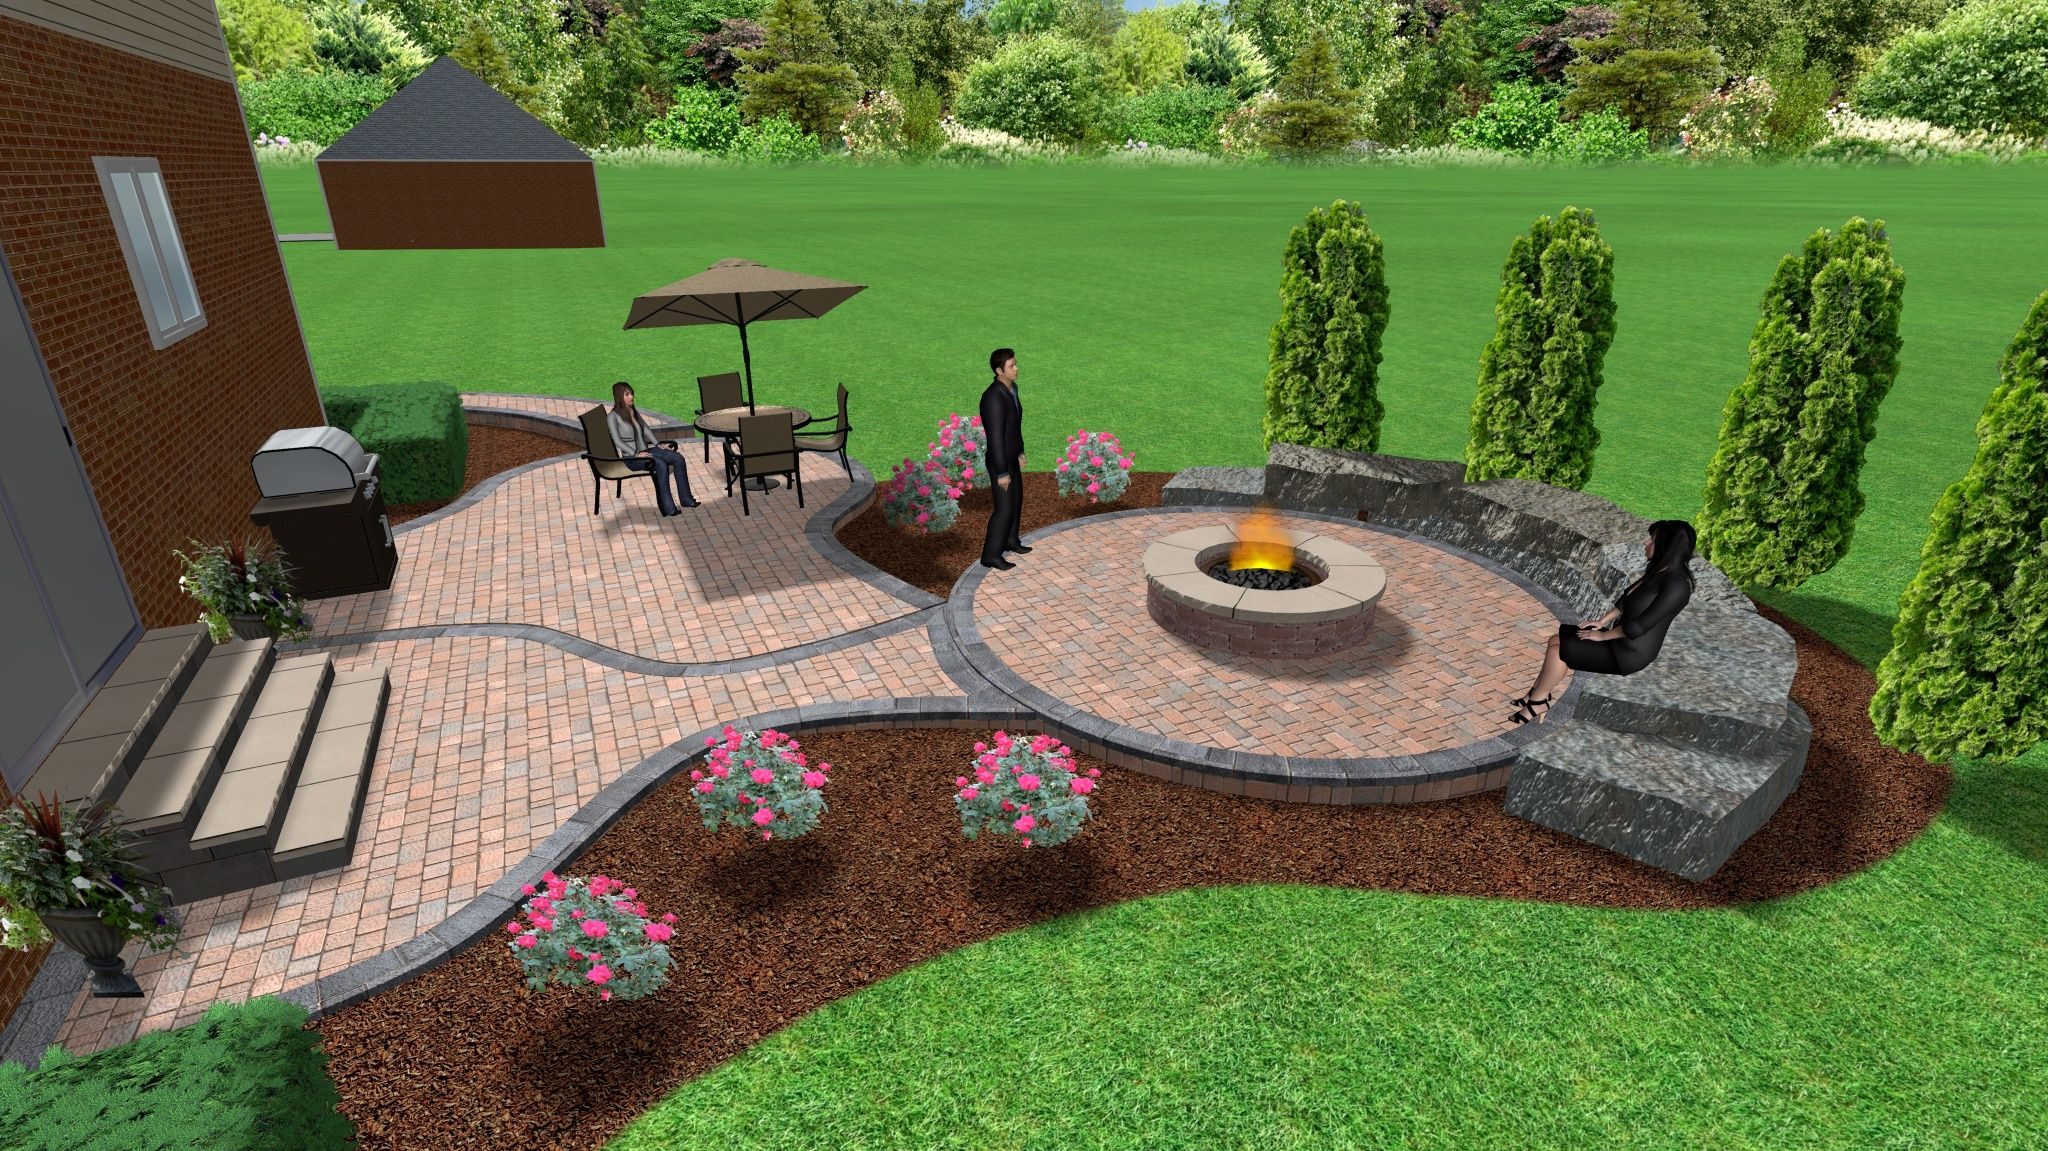 Delicieux Paver Patio With Fireplace. Brick Paver Patio And Fire Pit With Fireplace O